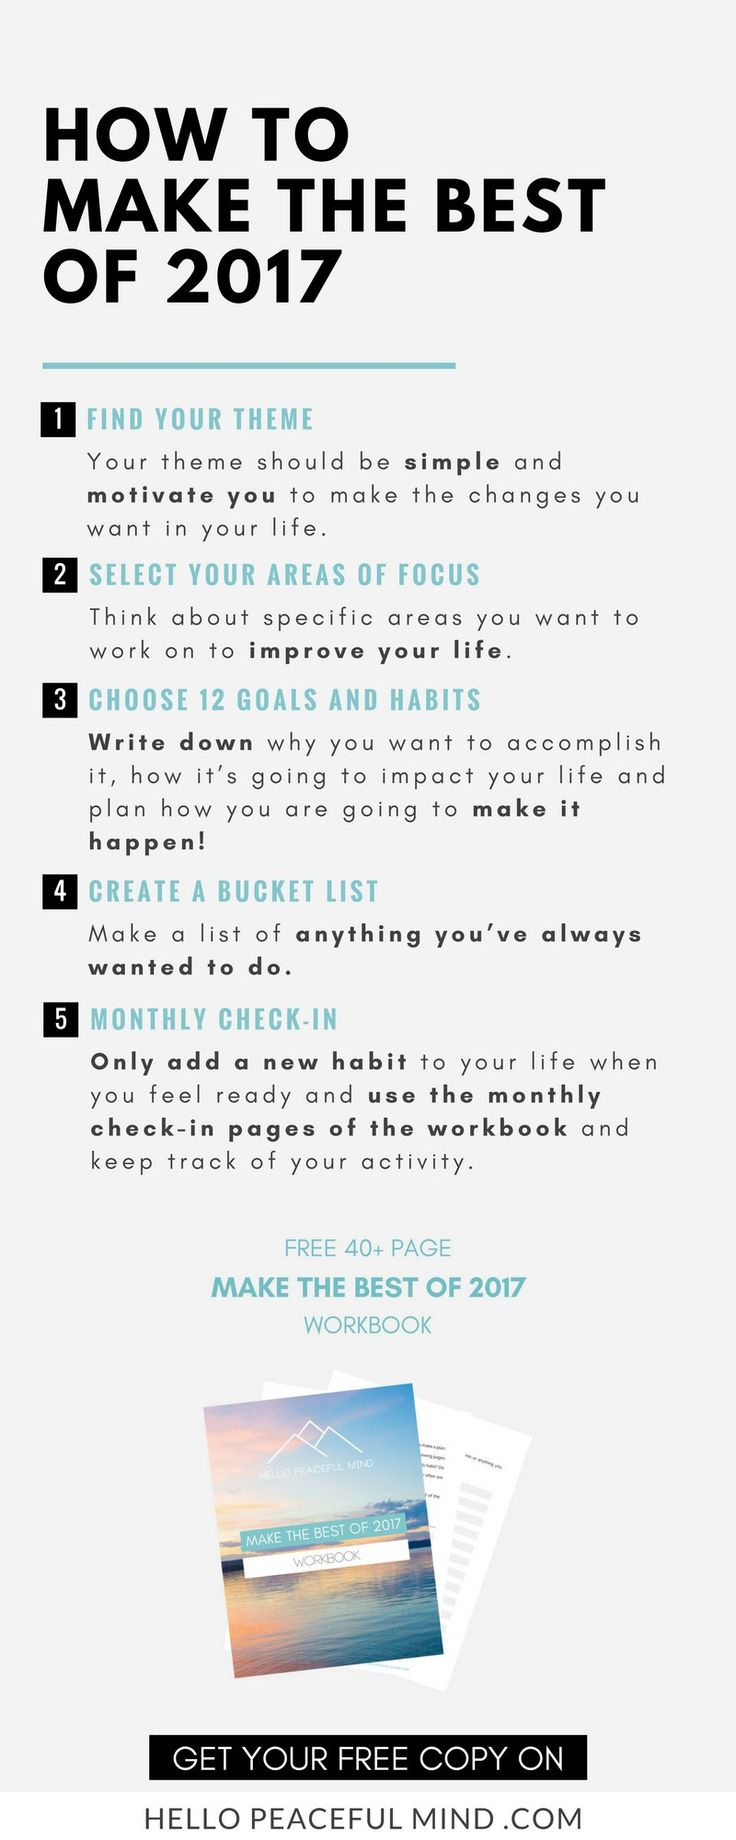 This year, I will make no resolutions and neither should you. Instead, you should focus on these 5 steps to make the best of 2017!